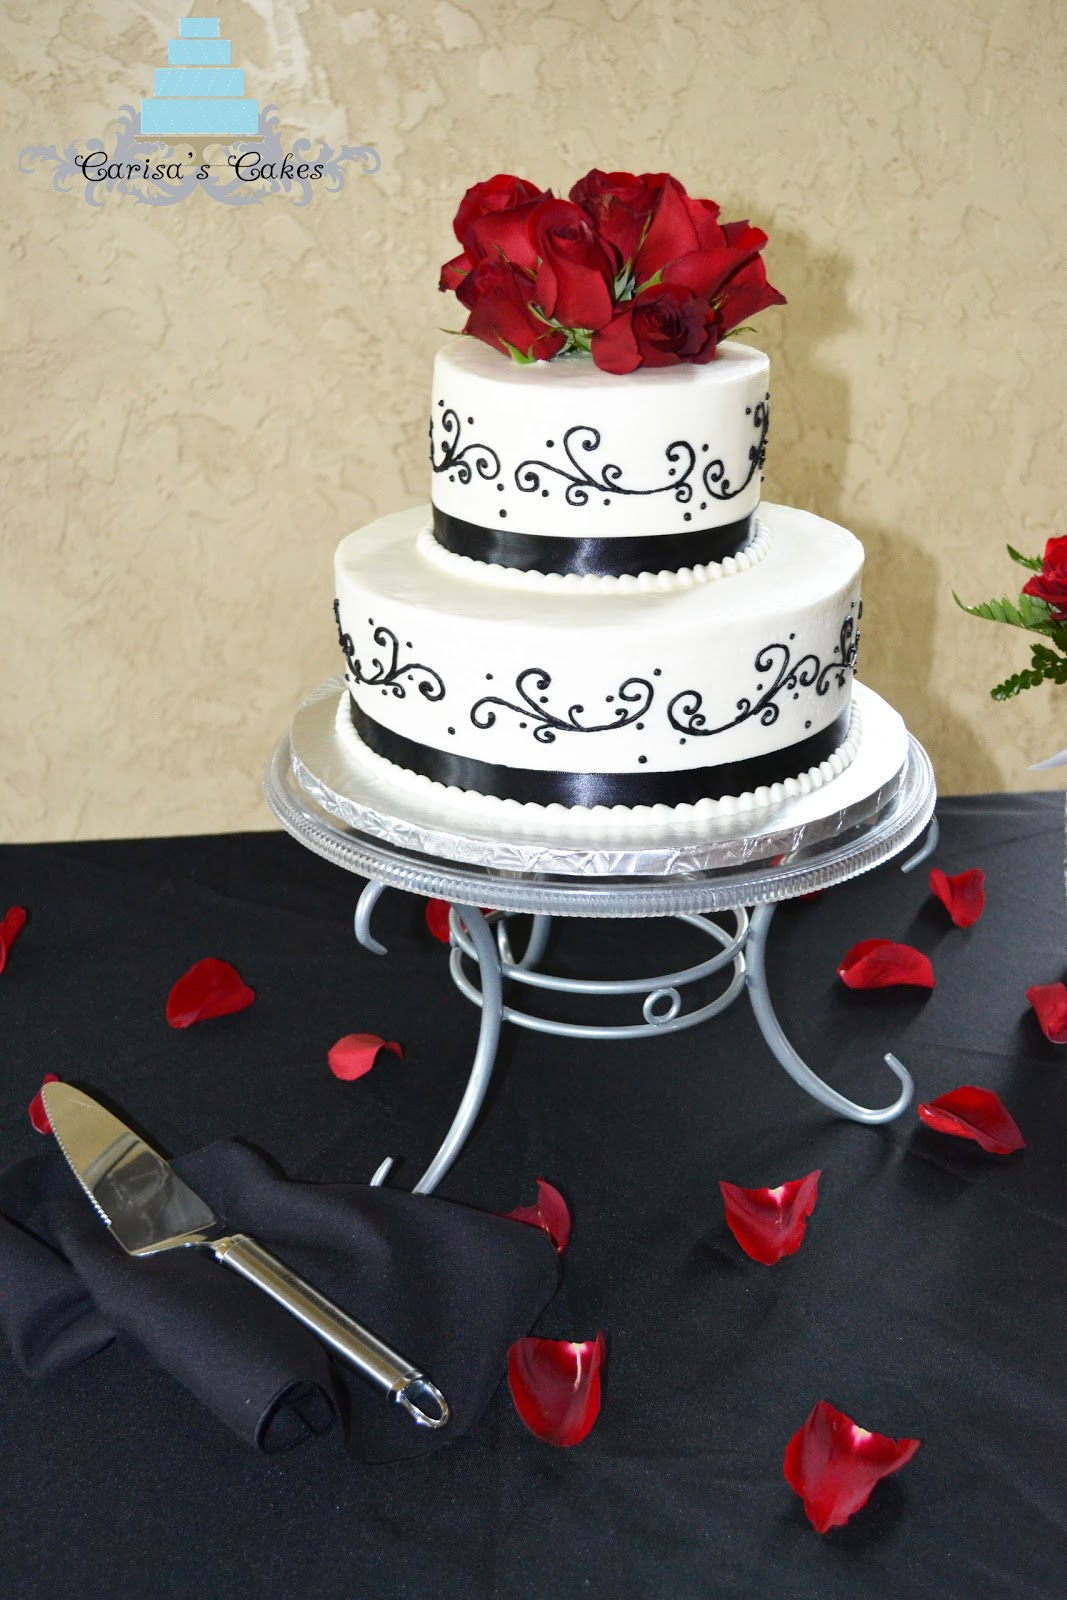 Carisa s Cakes Black and White Wedding Cake